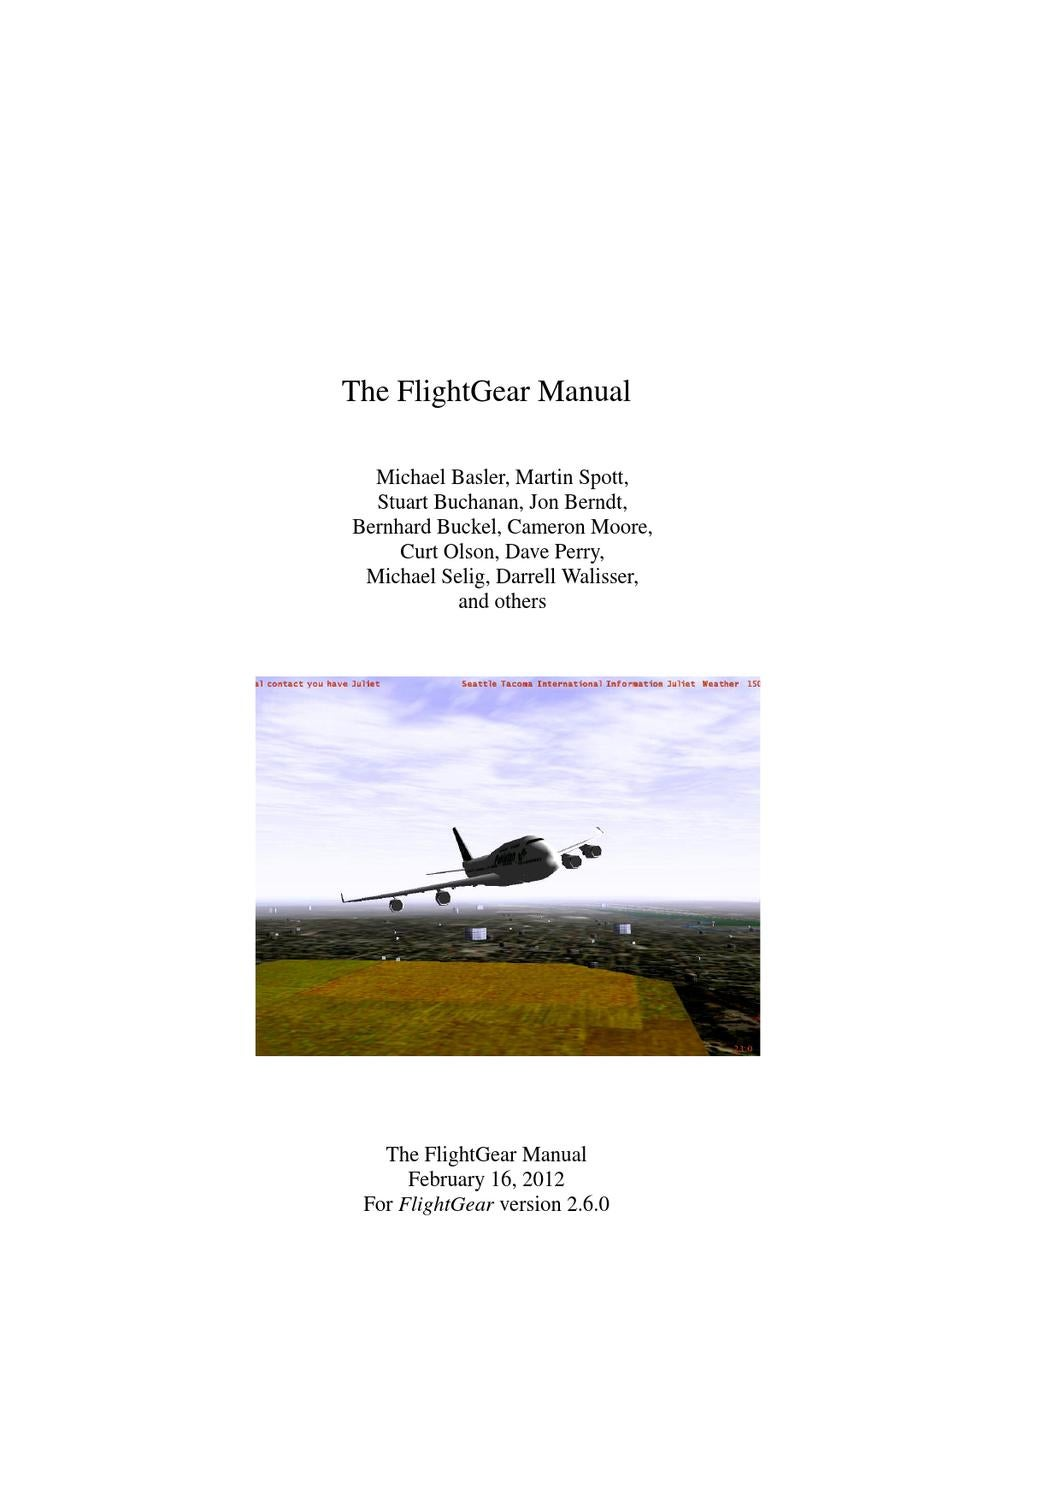 The Flightgear Manual By Hncorp Issuu F12 Magneto Wiring Schematic